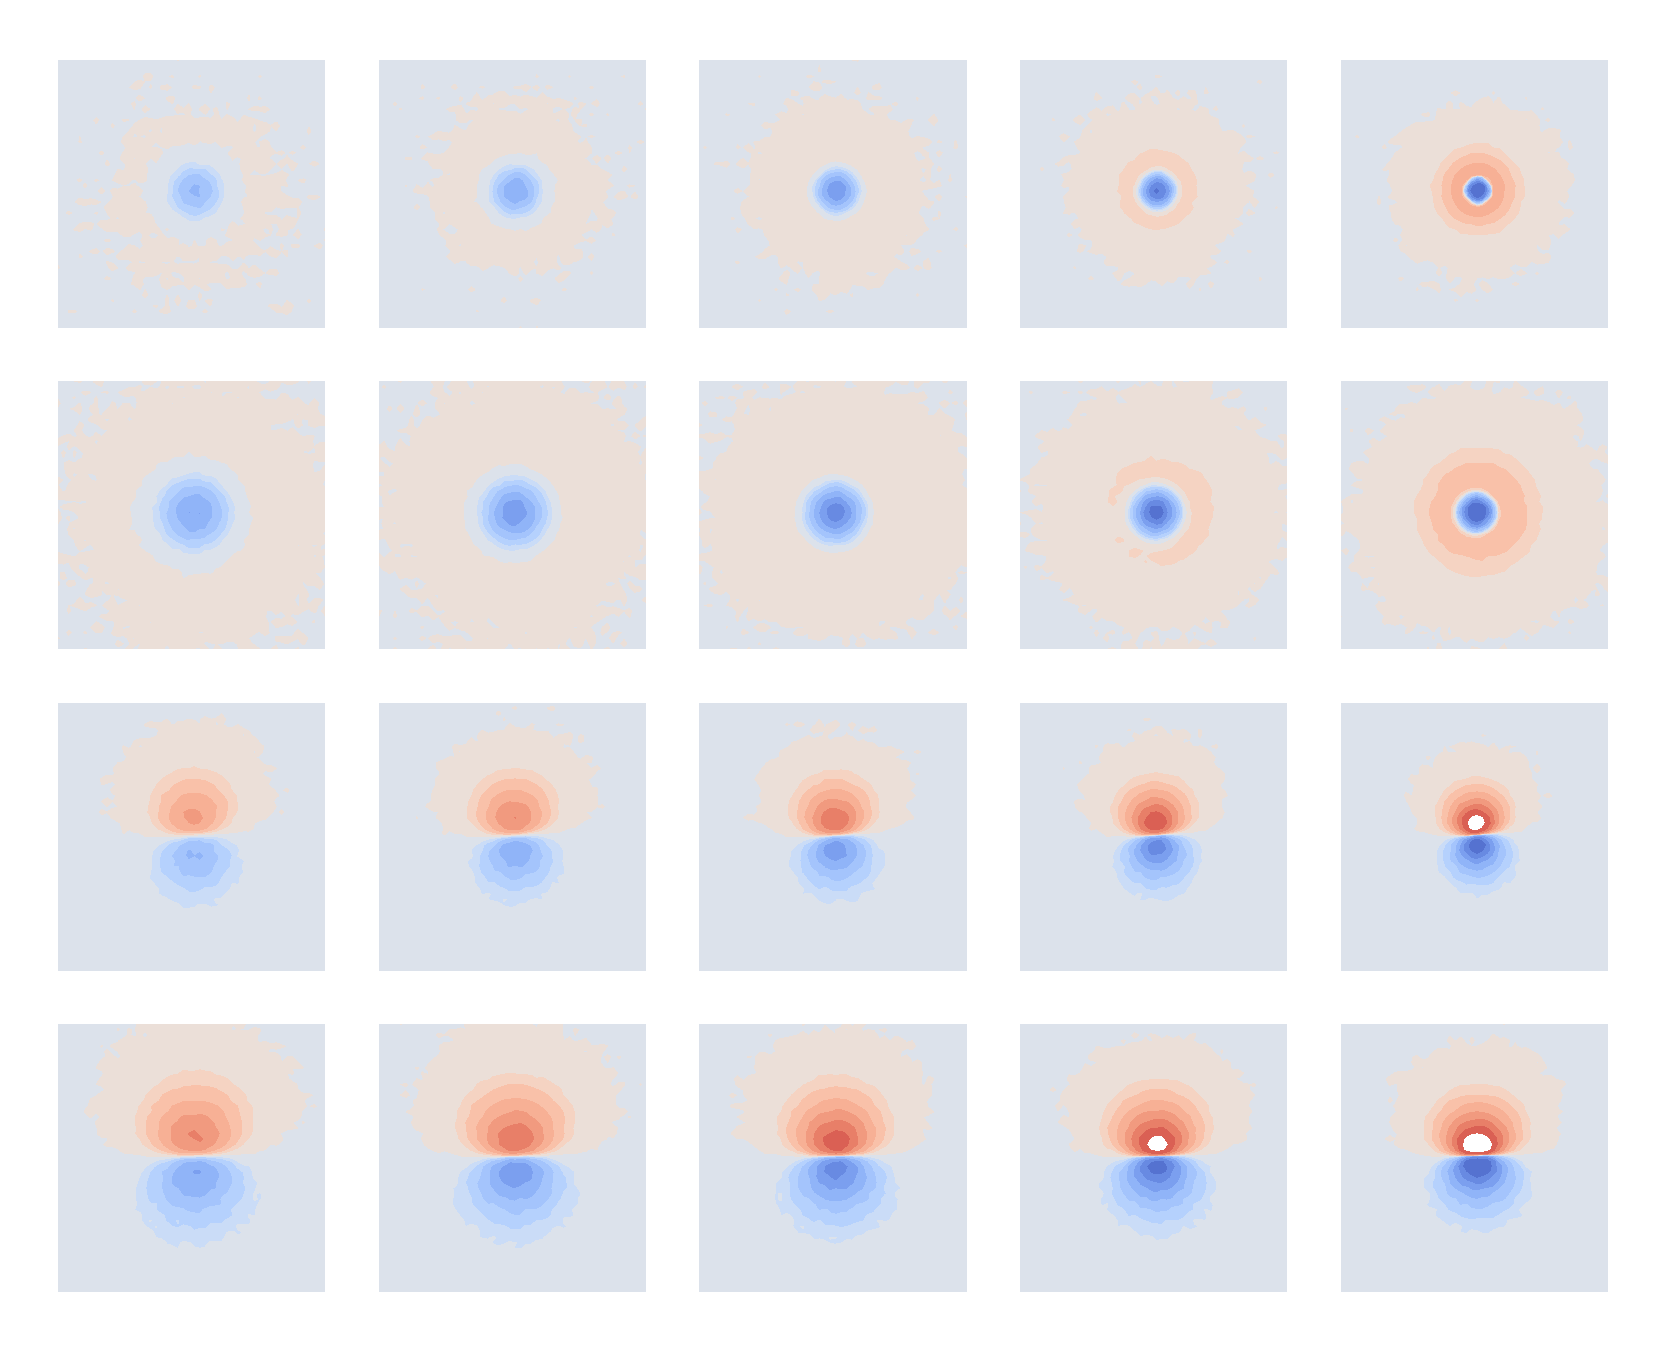 A five by four grid of small red and blue images showing the intensities of magnetic fields. The first two rows show small intense blue circles surrounded by large pale red circles, the fields of vertically oriented magnets. The bottom two rows show vertically symmetrical semicircular red and blue patterns from horizontally oriented magnets.